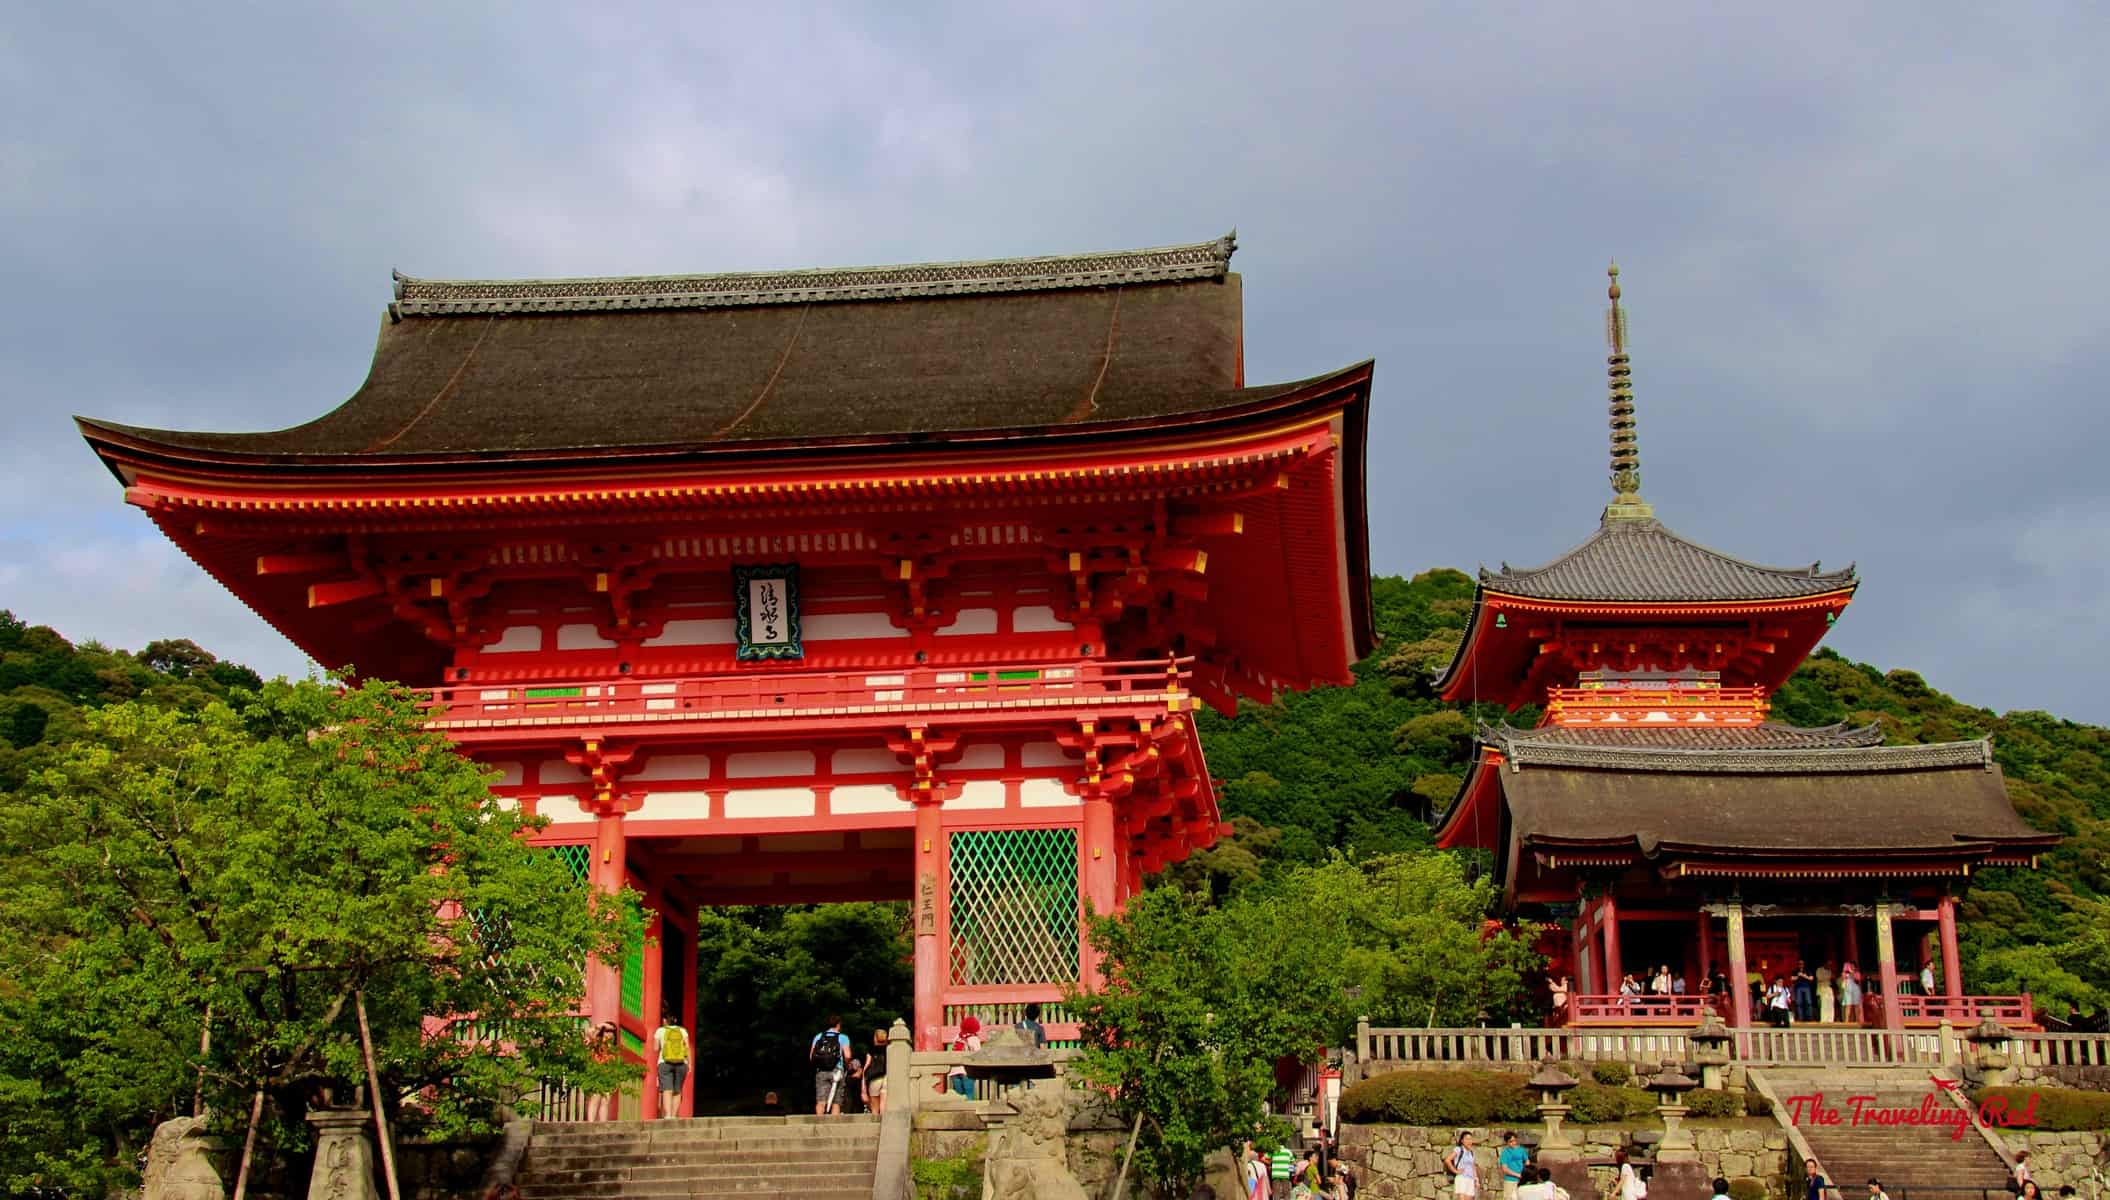 Visiting Kiyomizu-dera Temple and the surrounding area when in Kyoto, Japan.